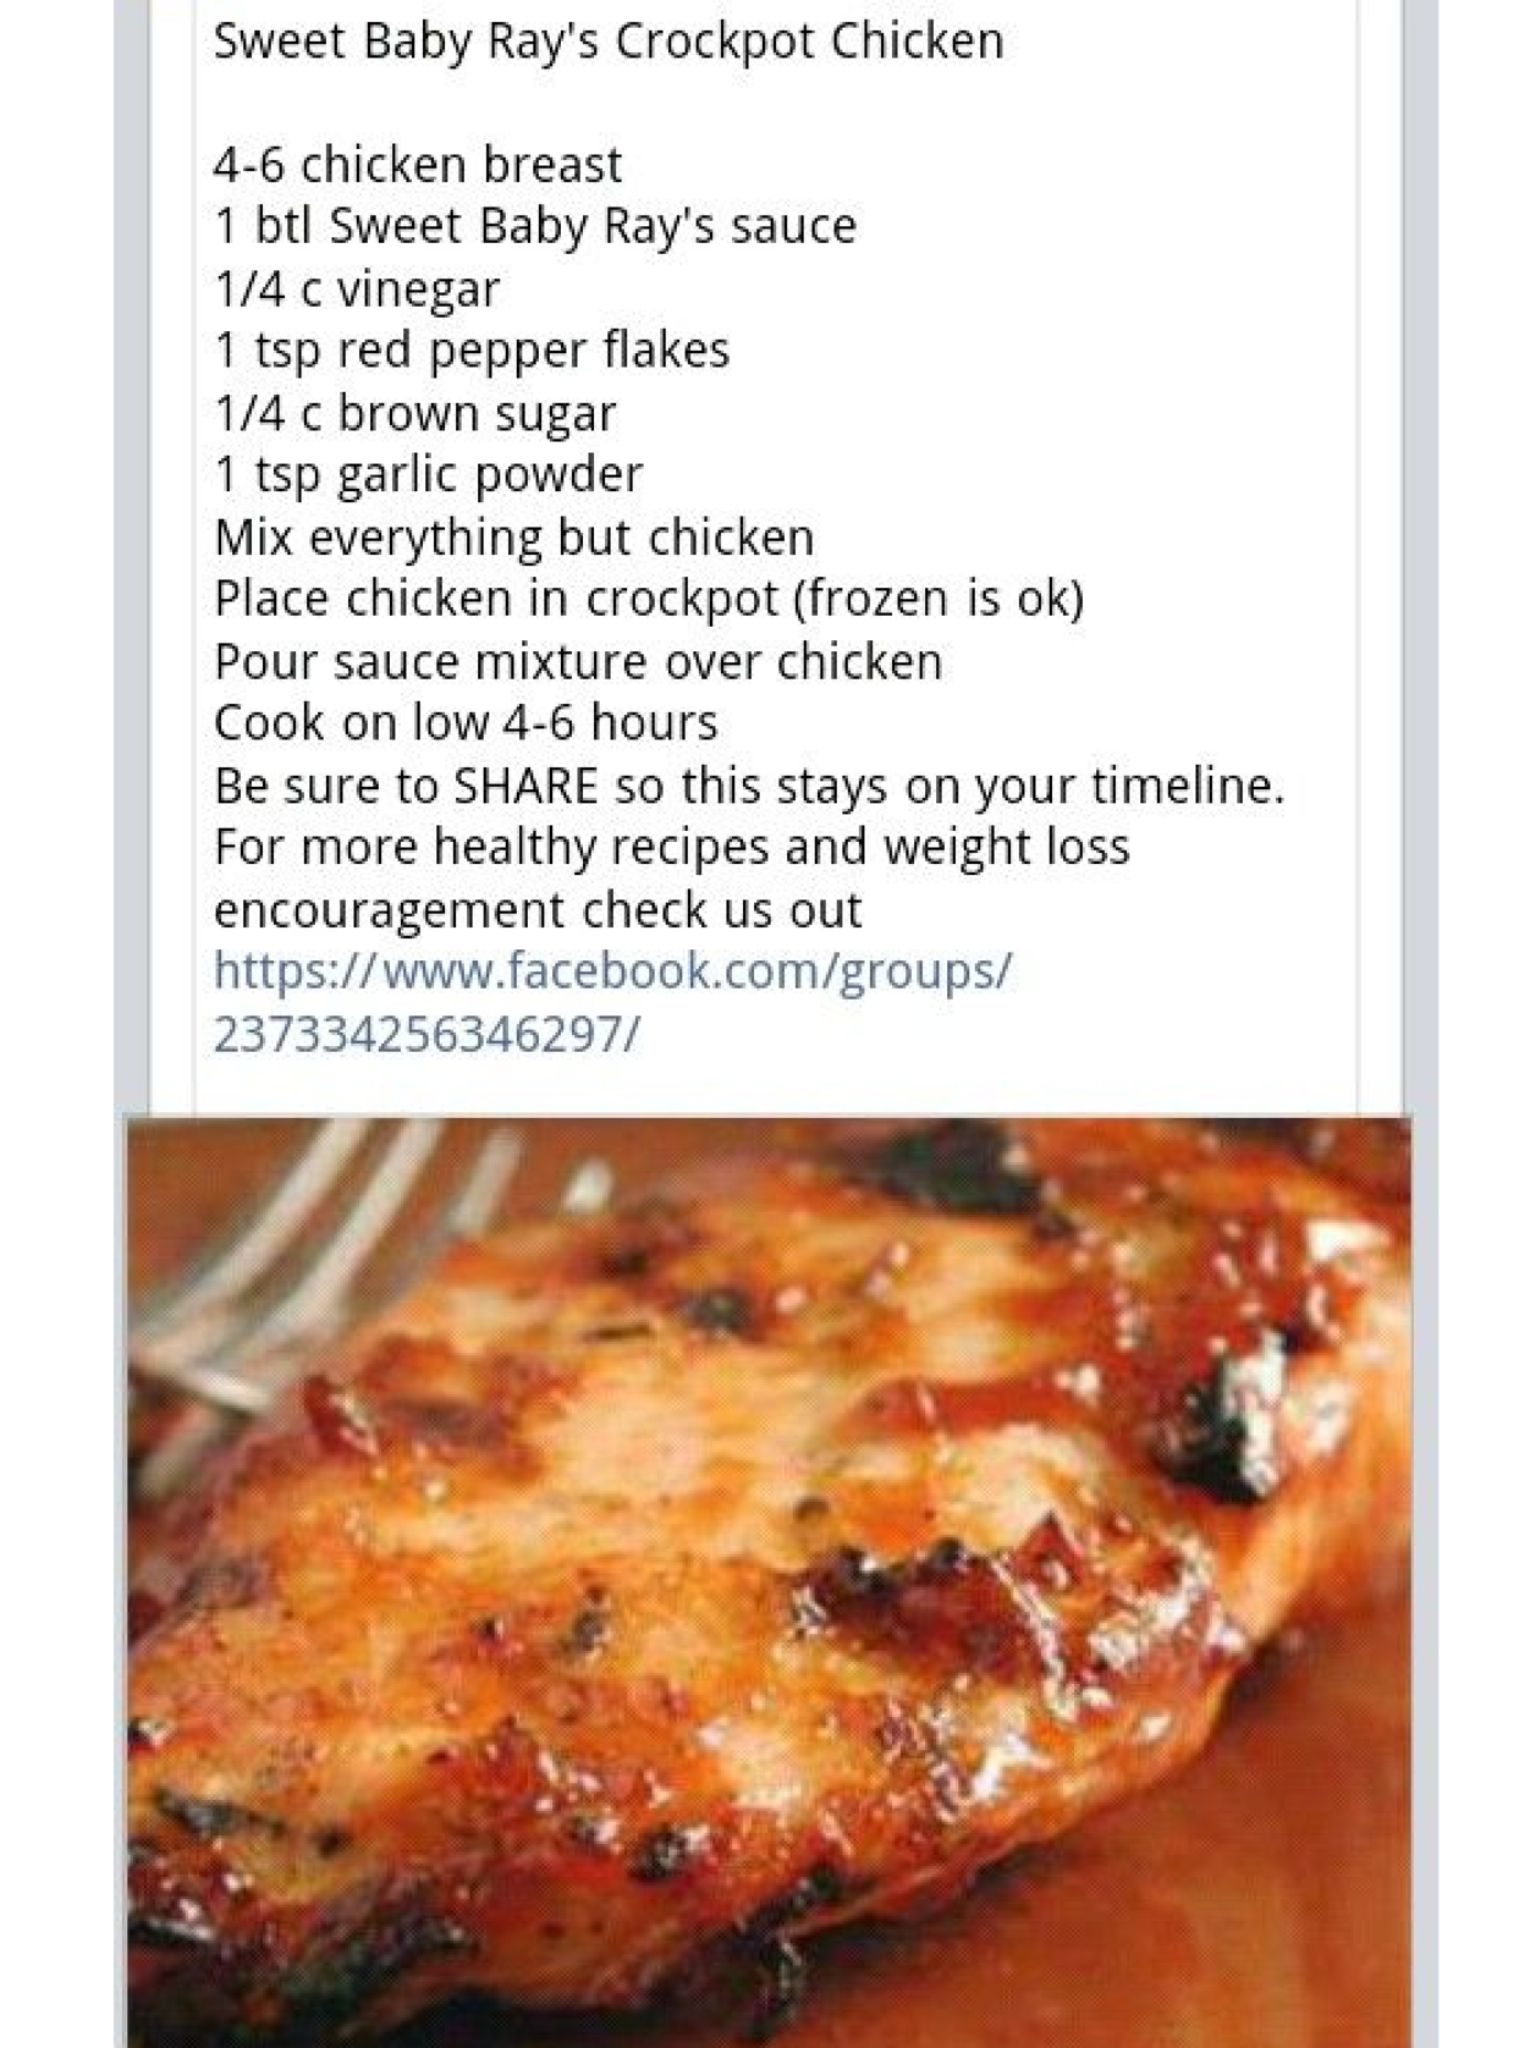 Sweet Baby Ray S Crockpot Chicken Food Recipes Crockpot Dishes Crock Pot Cooking